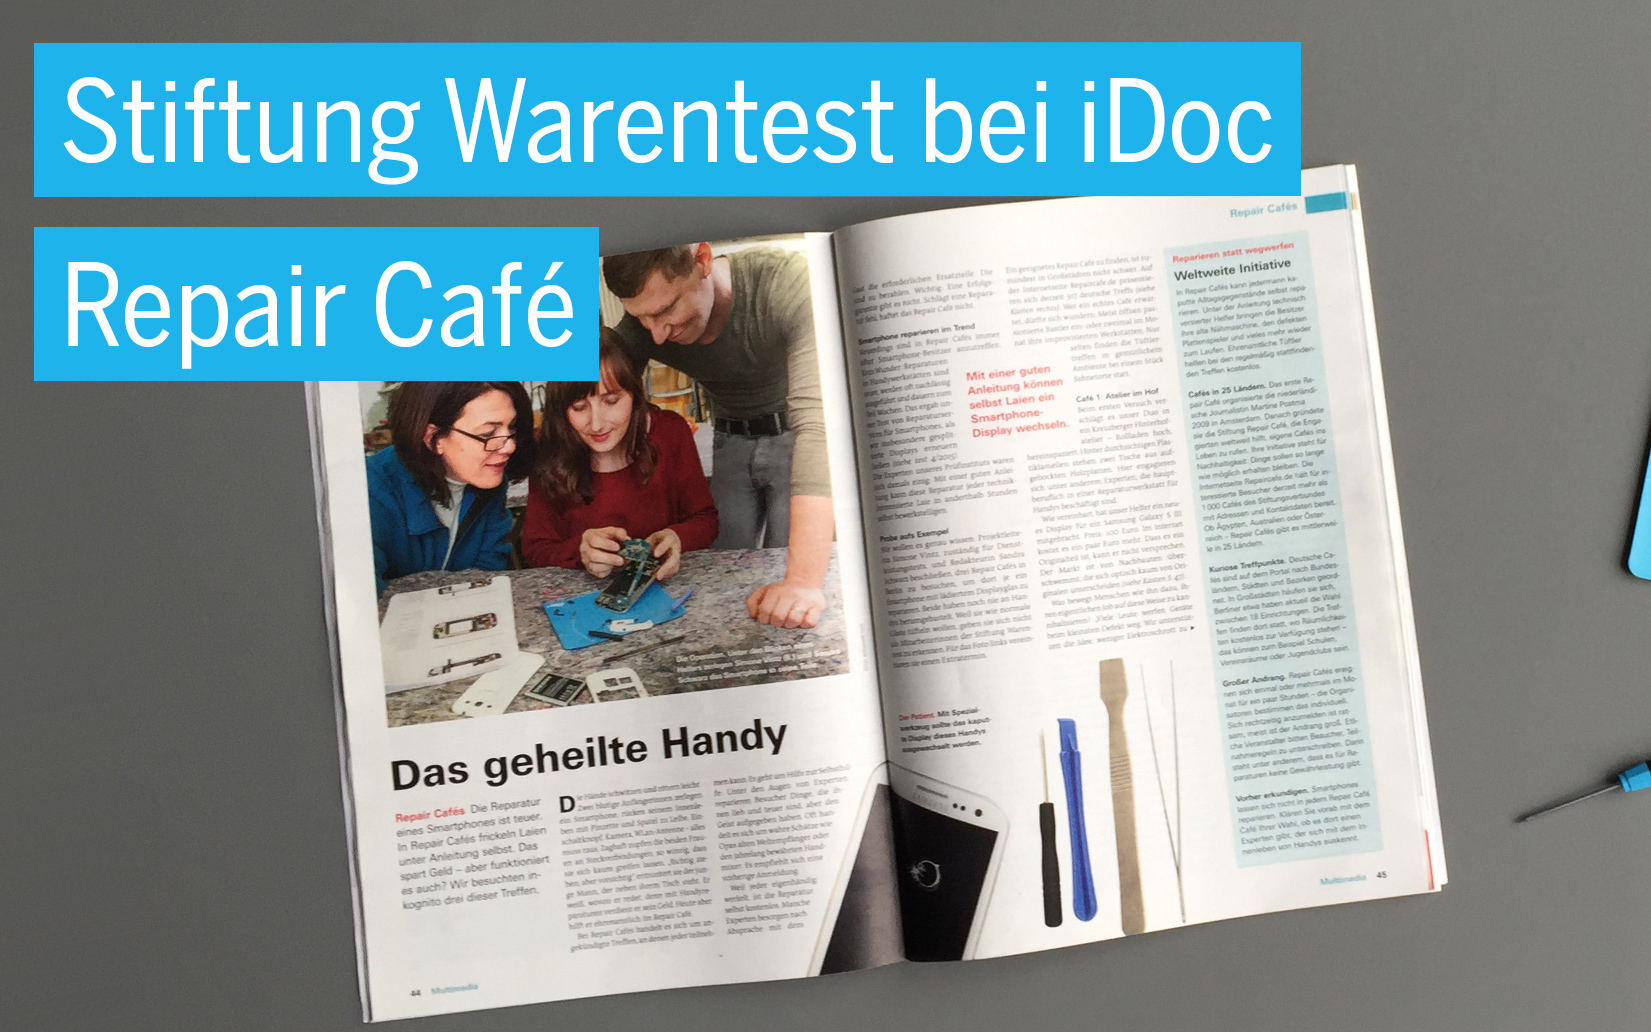 Dating cafe Stiftung Warentest